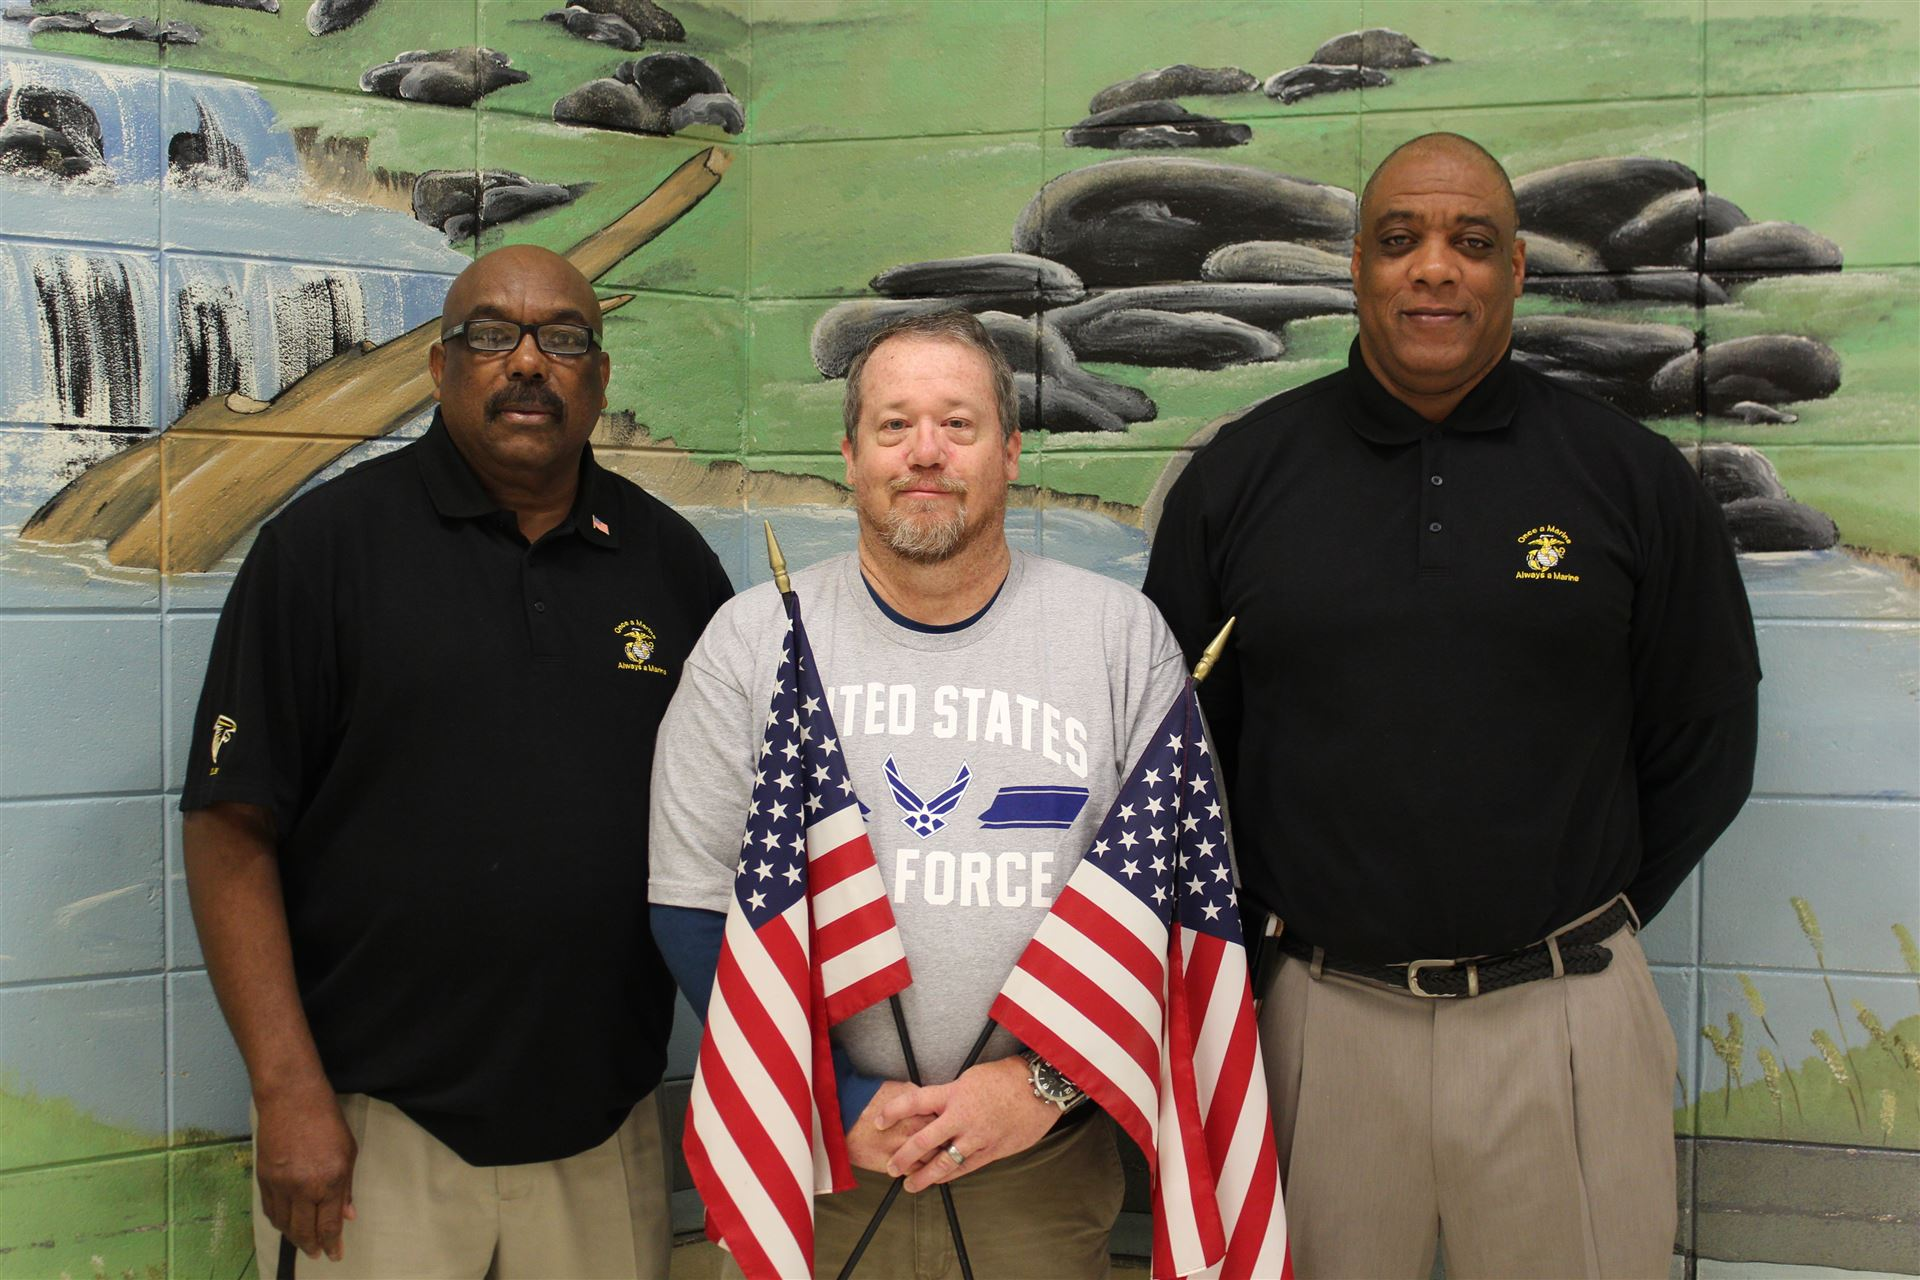 East Laurens High School Veterans (left to right): Carl Tyson, Scott Davenport, and Jimmy Williams.  Thank you for serving our country!